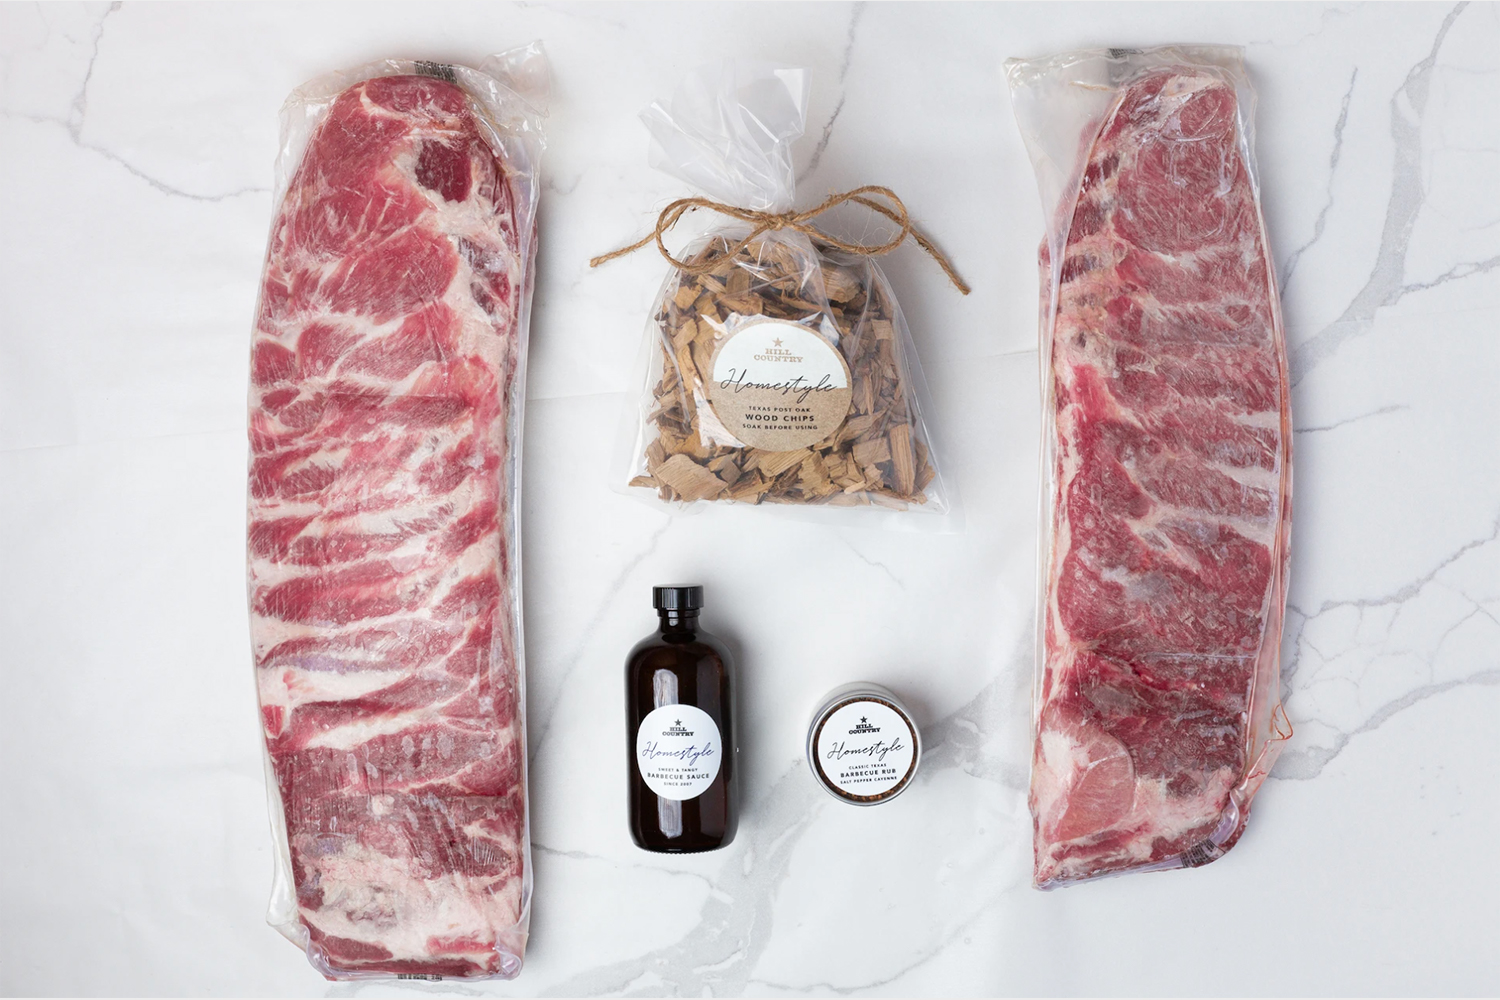 Hill Country Barbecue Rib Kit